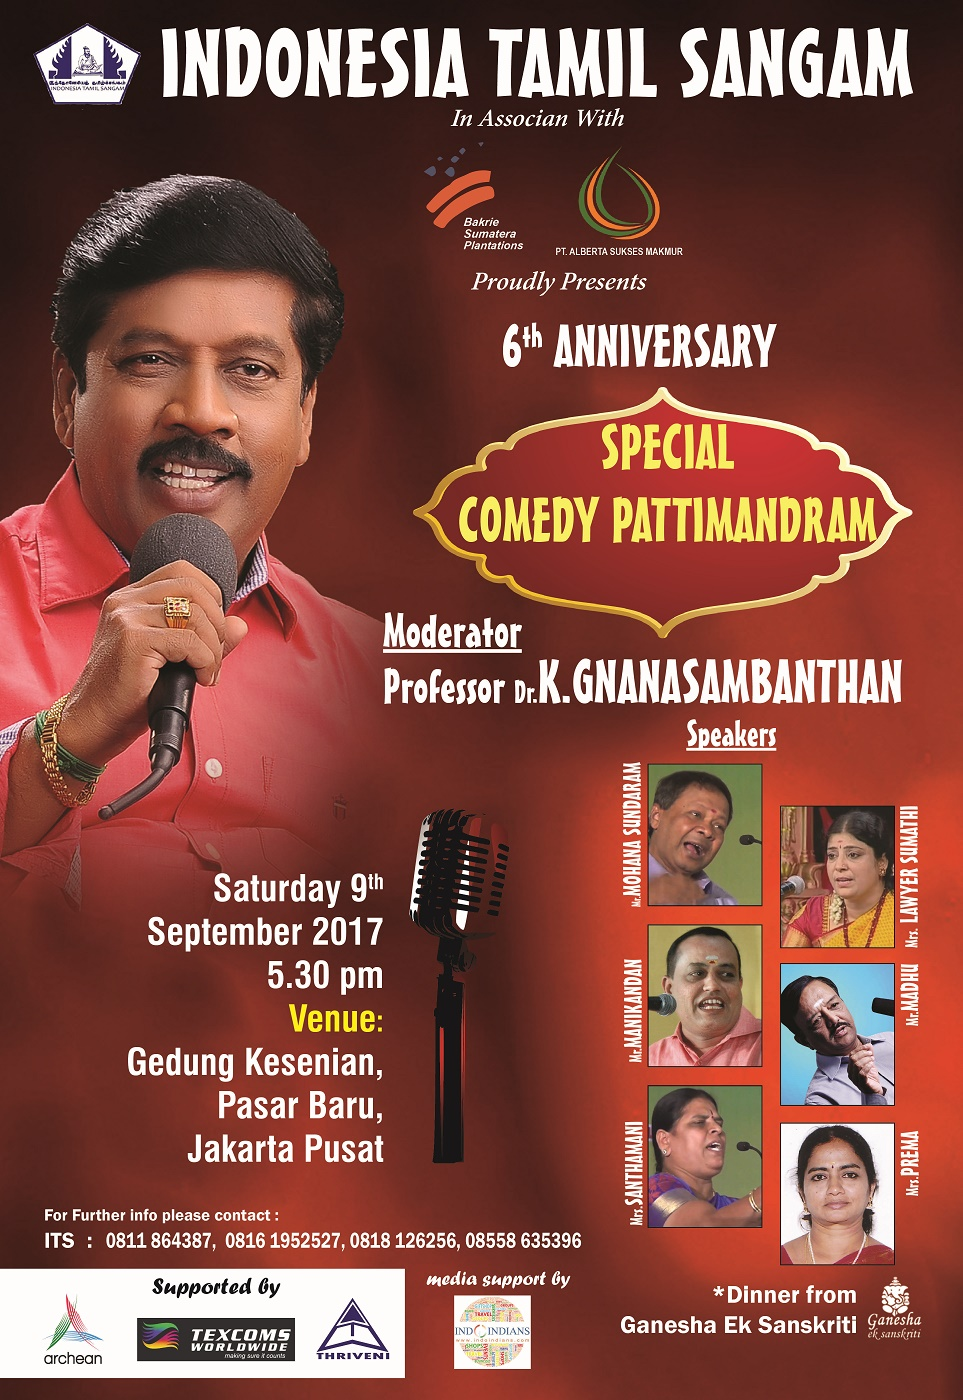 6th ANNIVERSARY EVENT OF INDONESIA TAMIL SANGAM - SPECIAL COMEDY PATTIMANDRAM